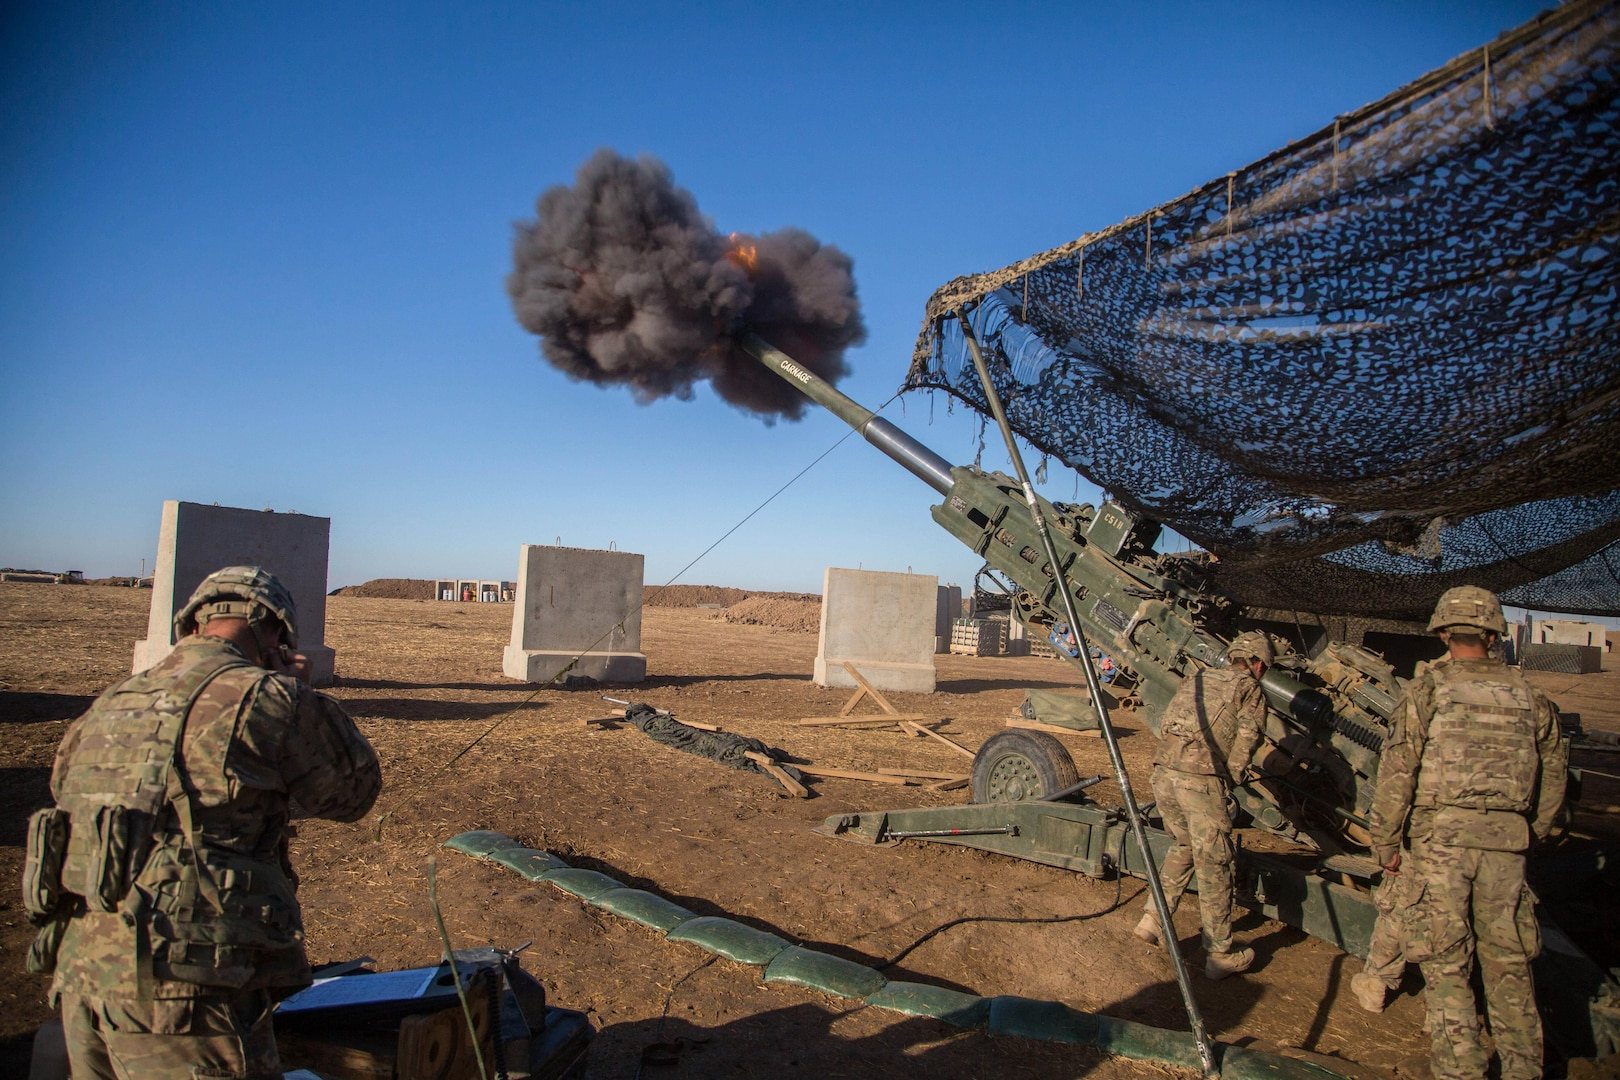 U.S. Soldiers assigned to Charlie Battery, 1st Battalion, 320th Field Artillery Regiment, 2nd Brigade Combat Team, 101st Airborne Division fire a M777 A2 Howitzer in support of Iraqi security forces at Platoon Assembly Area 14, Iraq, Dec. 7, 2016. Charlie Battery conducted the fire mission in support of Combined Joint Task Force - Operation Inherent Resolve, the global Coalition to defeat ISIL in Iraq and Syria.  (U.S. Army photo by Spc. Christopher Brecht)